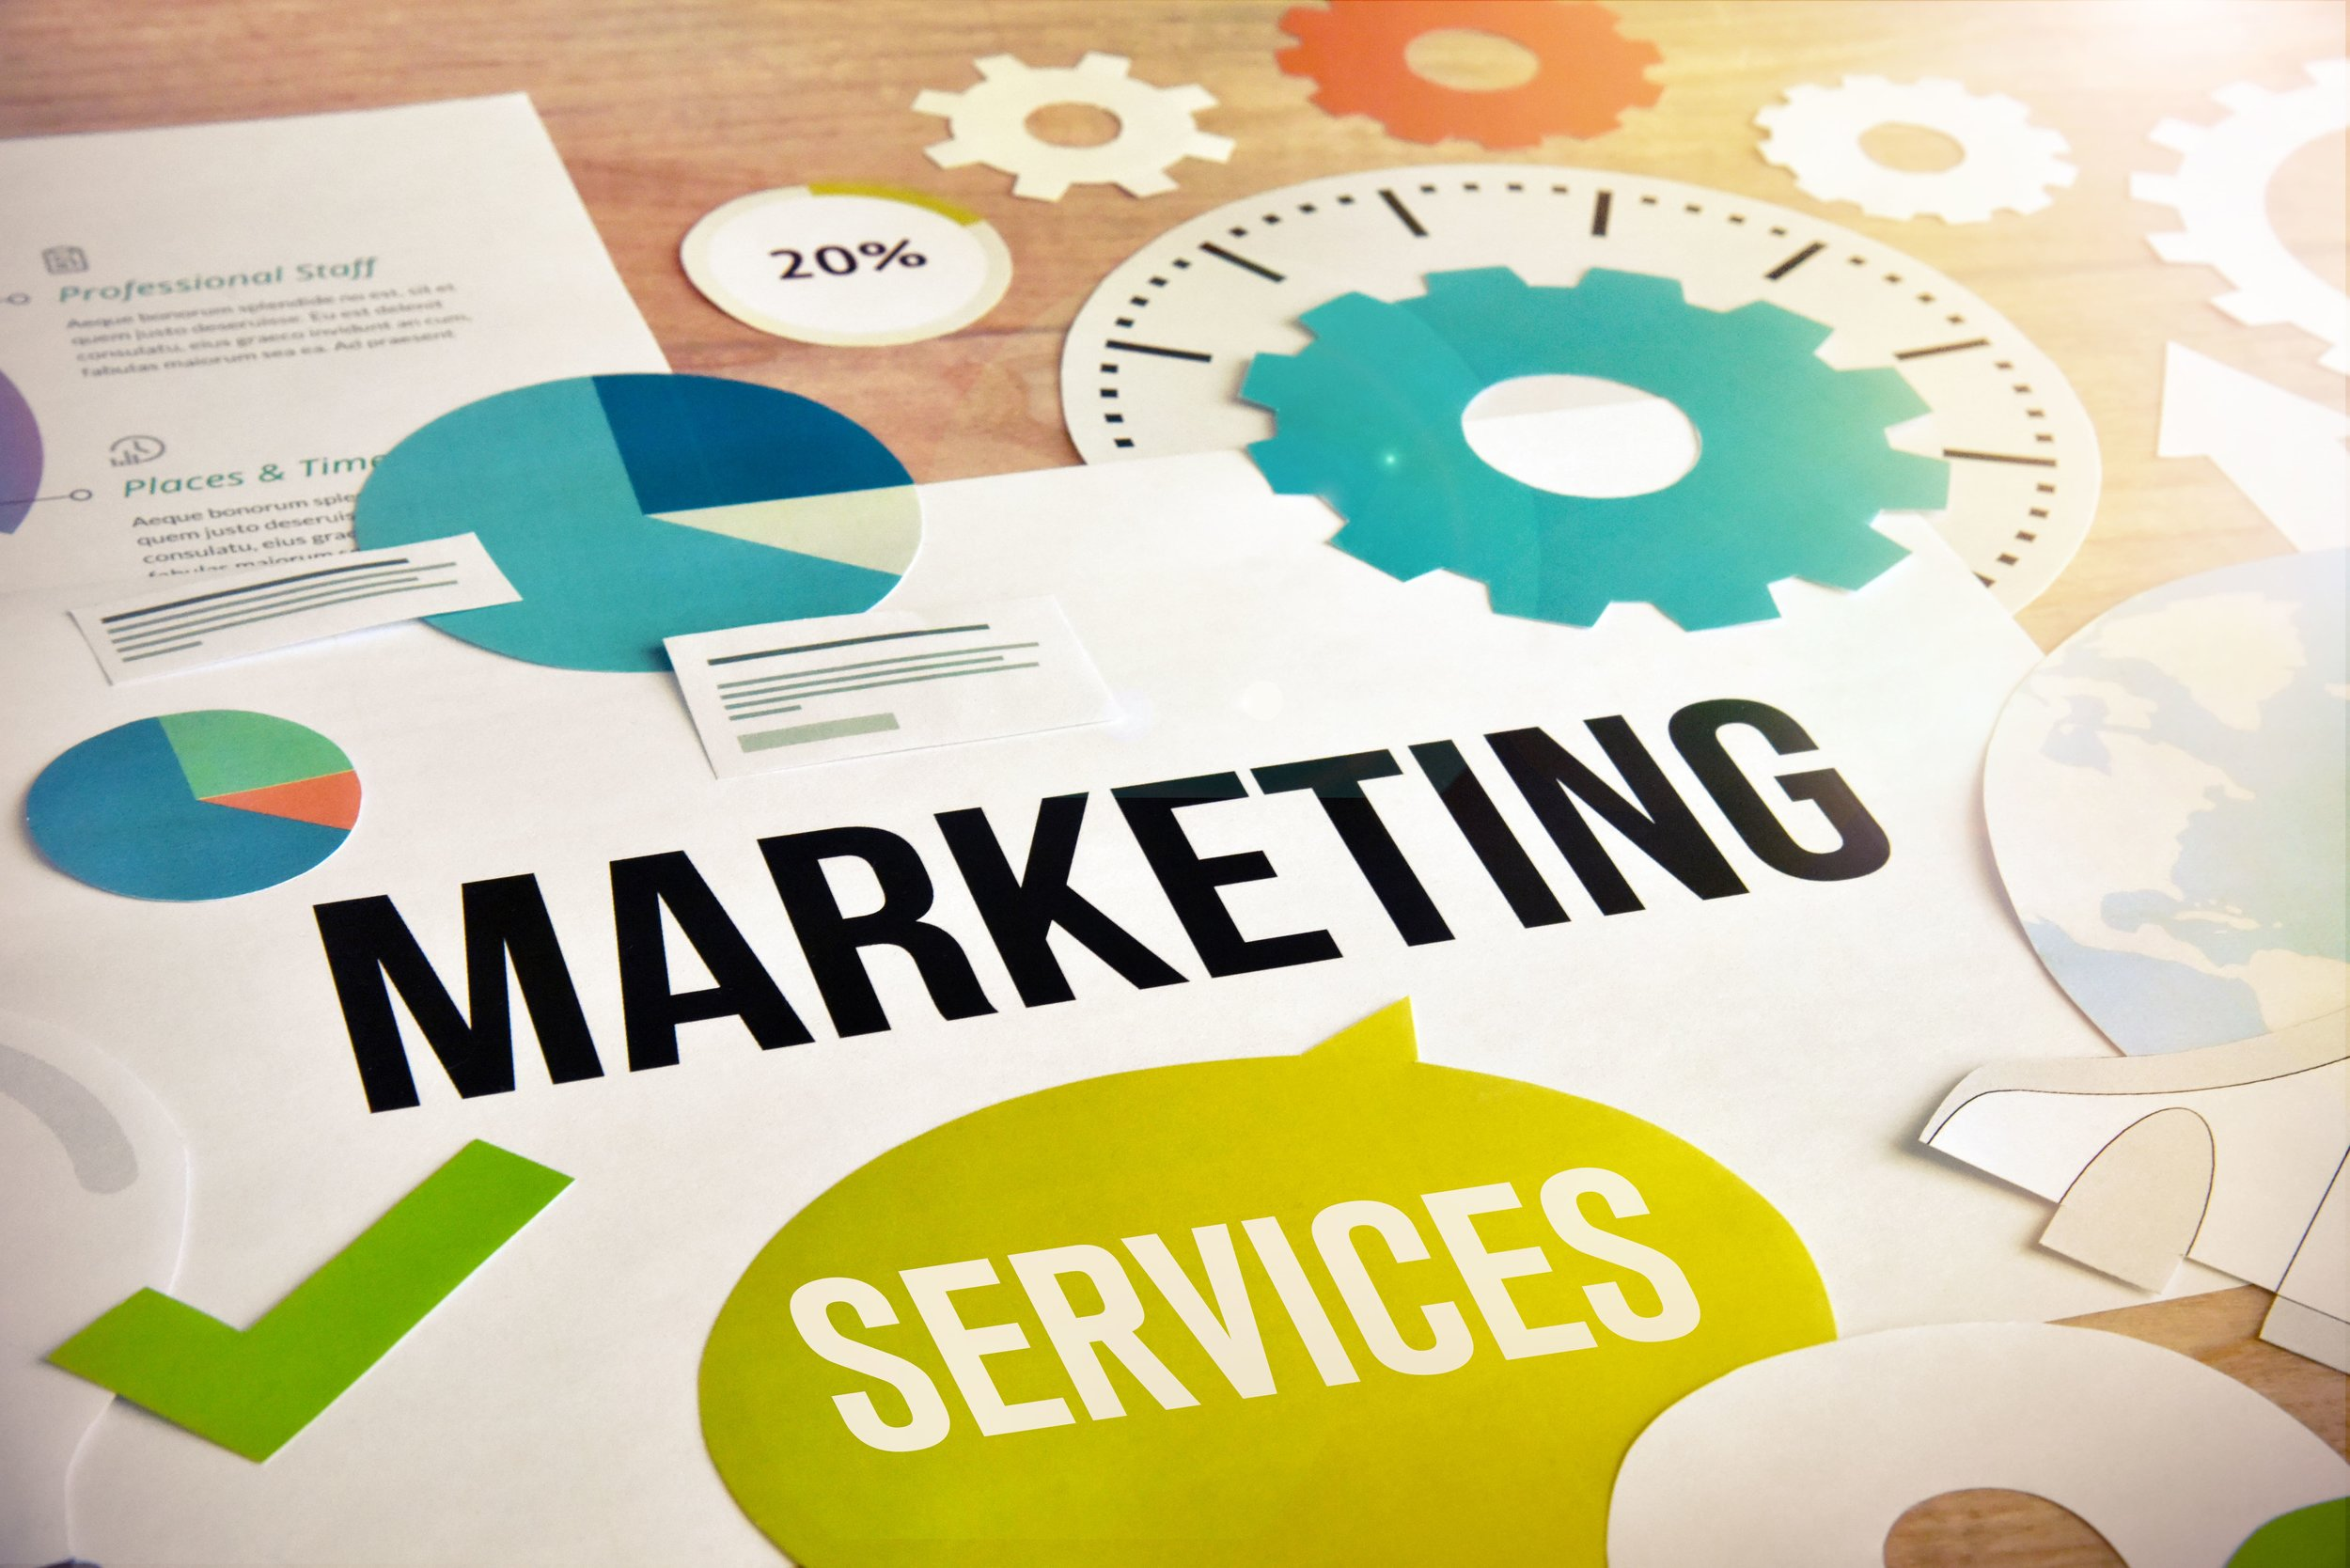 Marketing services is a great way to make money as a freelancer.